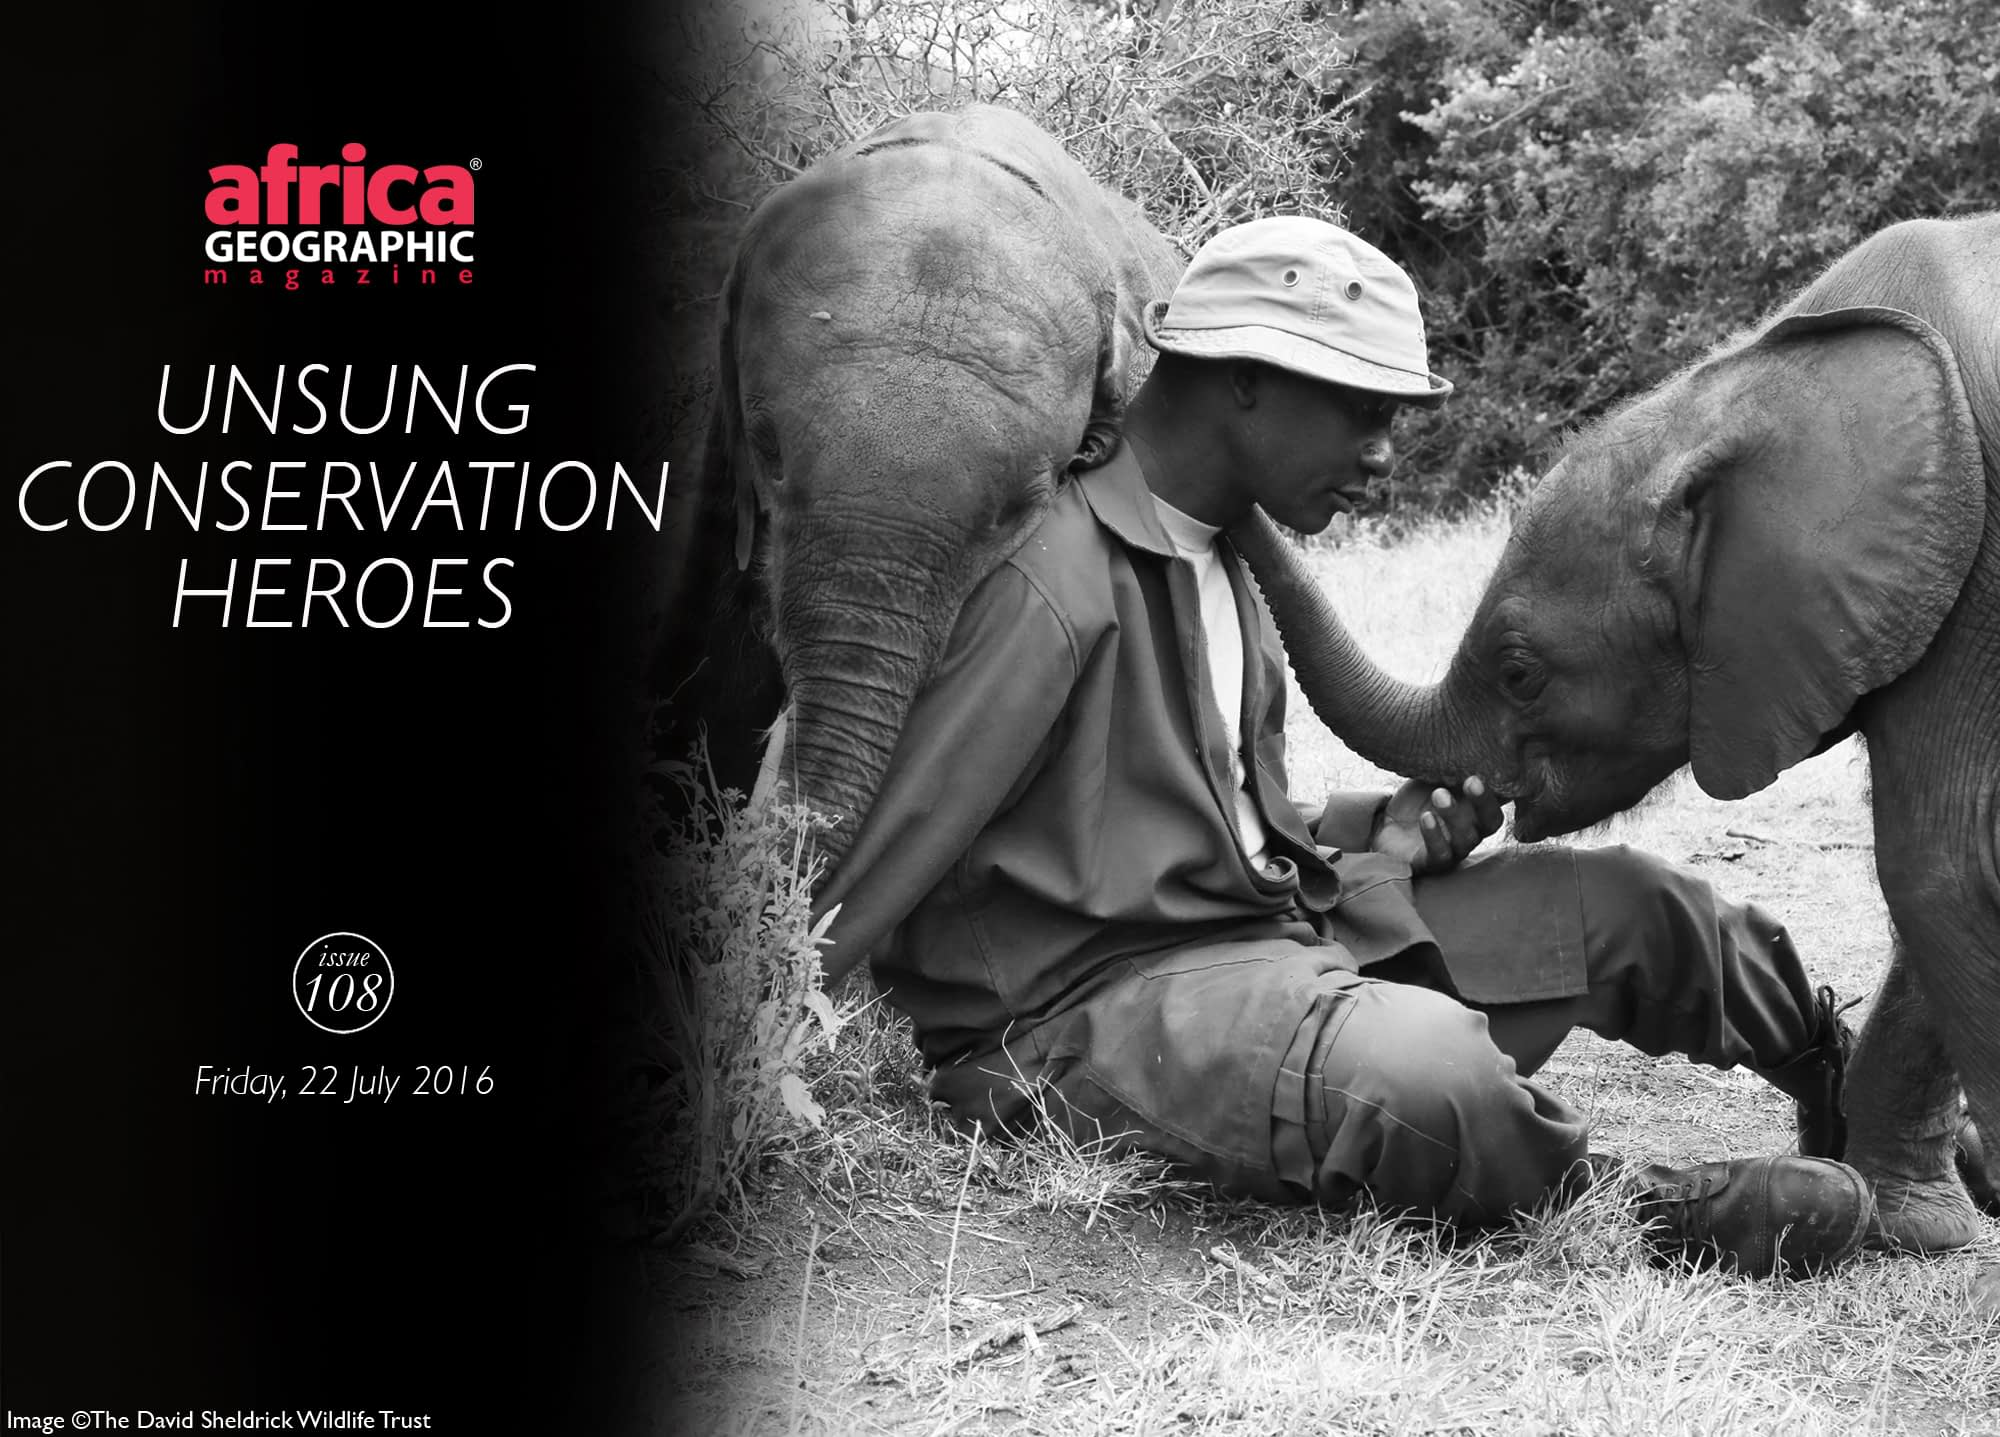 Unsung Conservation Heroes